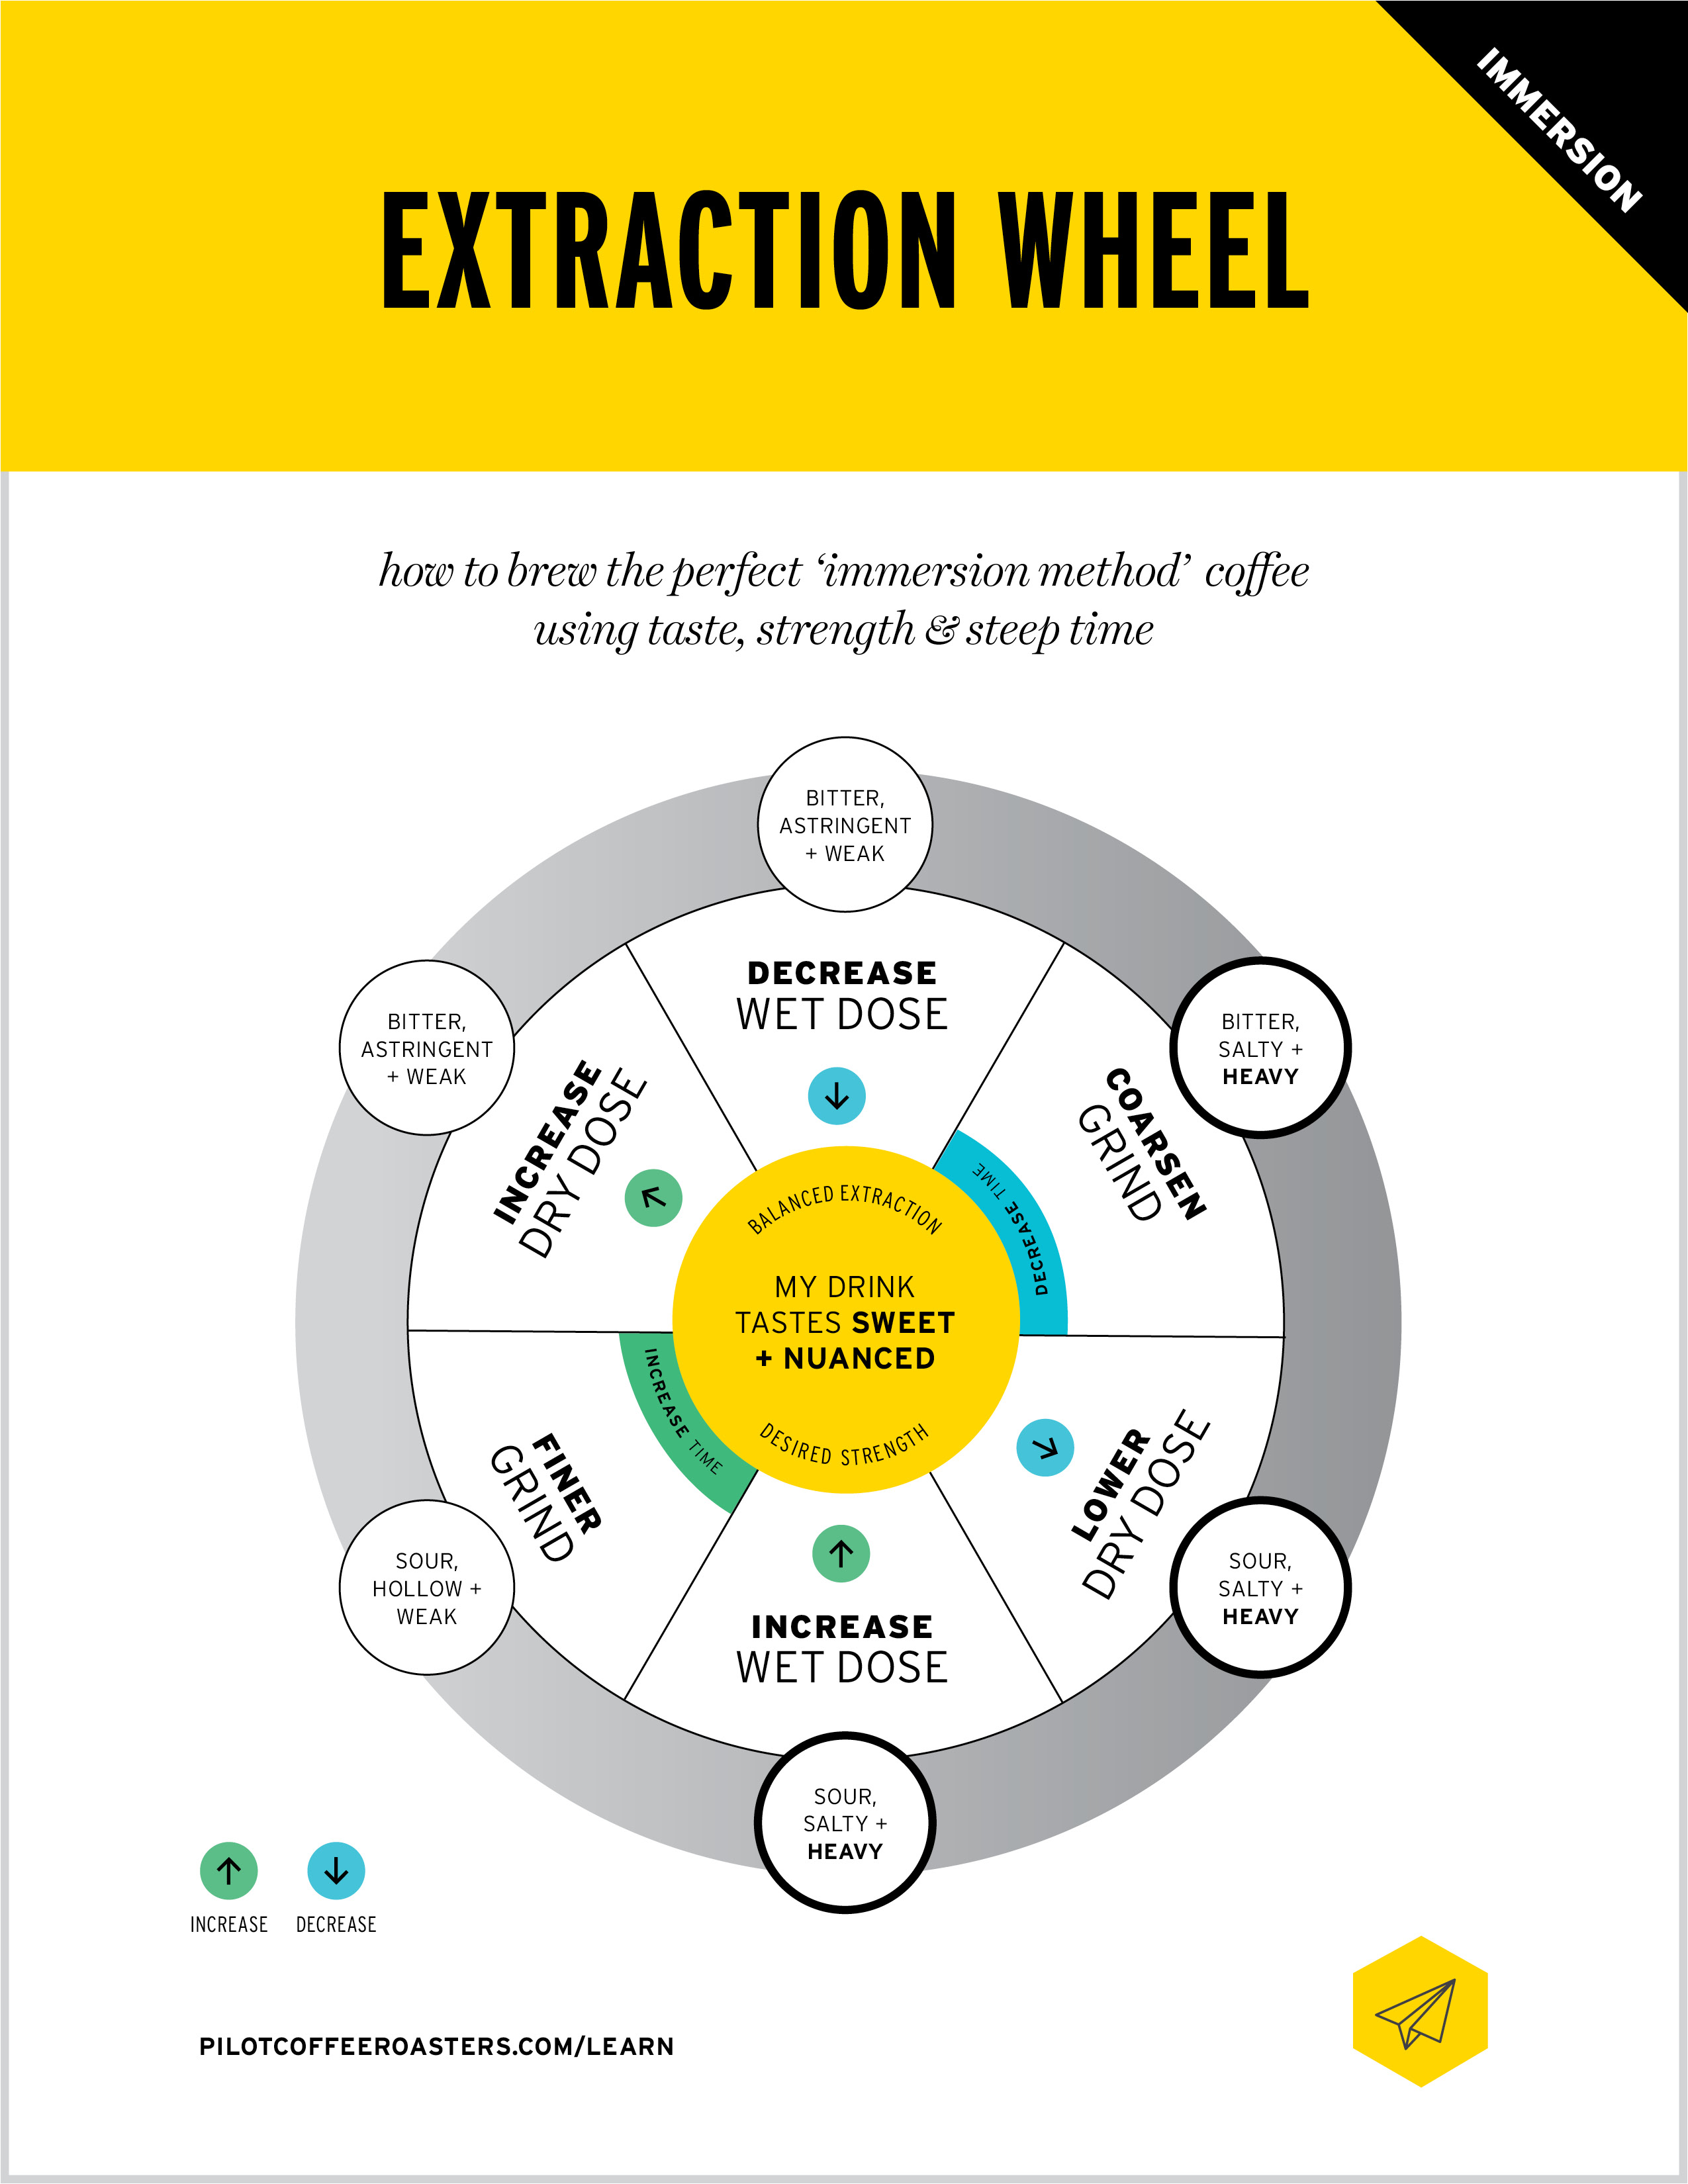 EXTRACTION WHEEL – IMMERSION